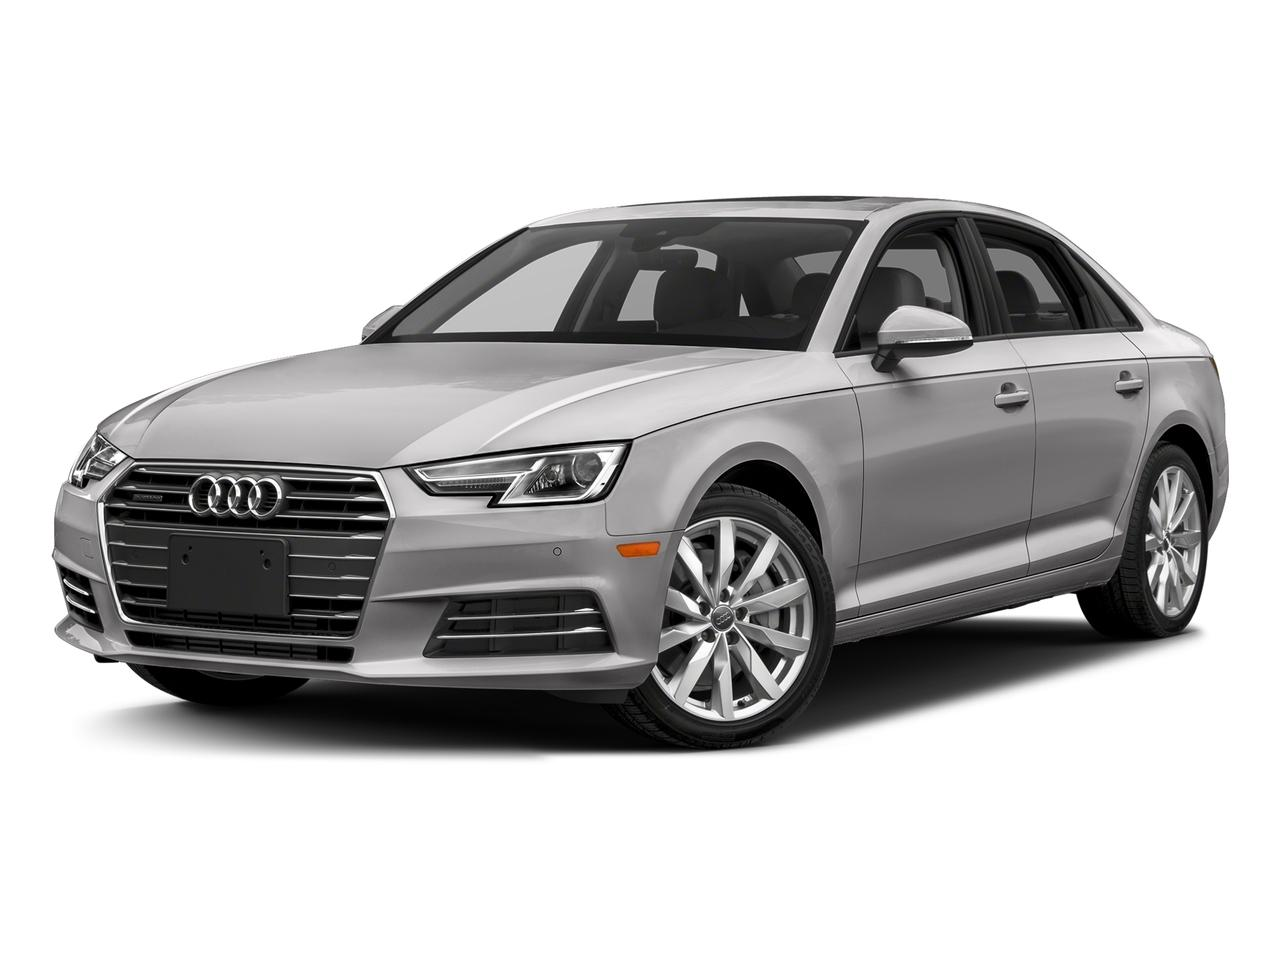 2018 Audi A4 Vehicle Photo in Columbus, GA 31904